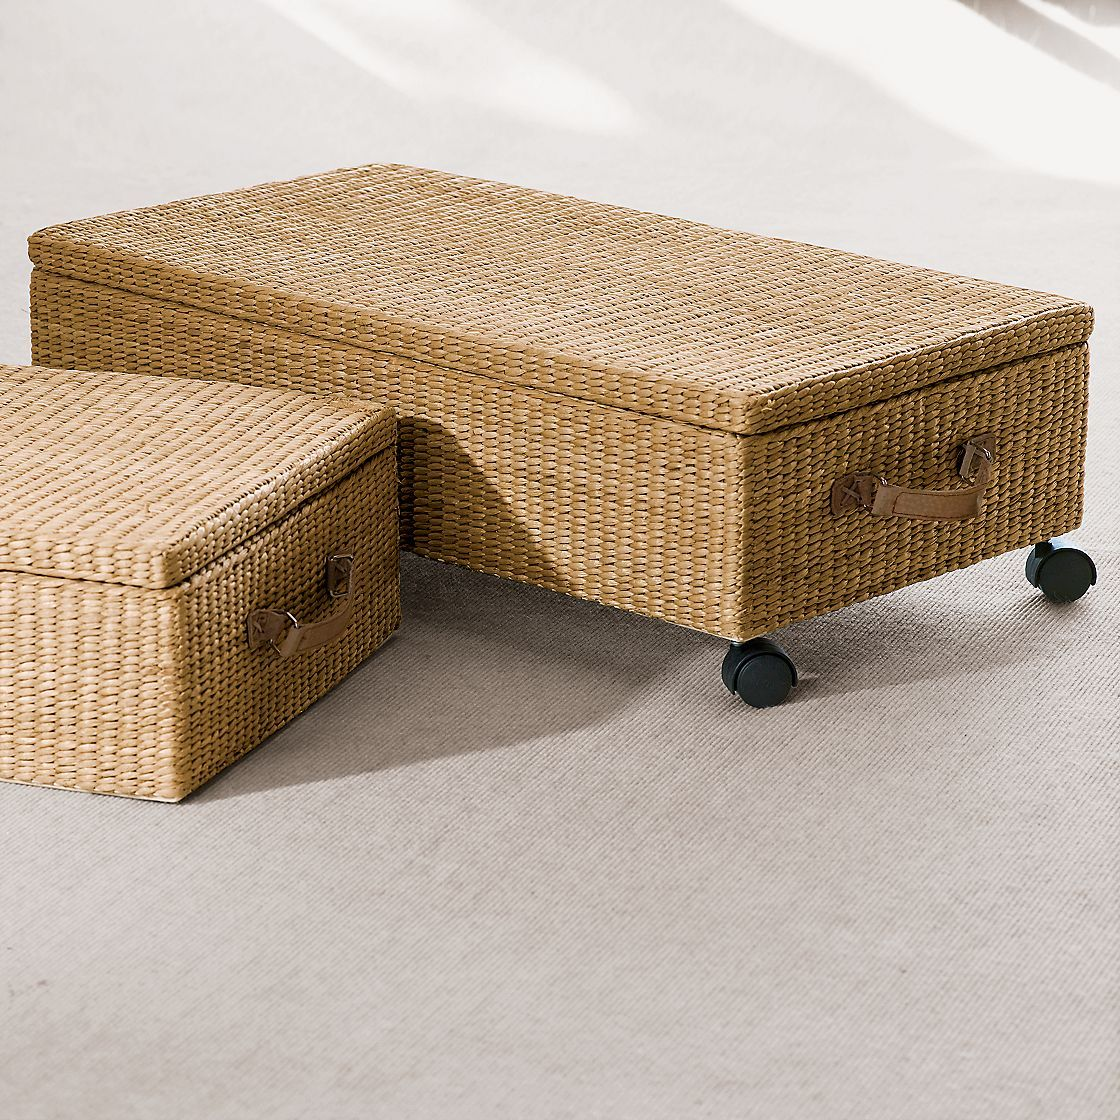 Company Store Under The Bed Box With Wheels If You Are Going To Ruin Your Feng Shui By Storing Stuff U Under